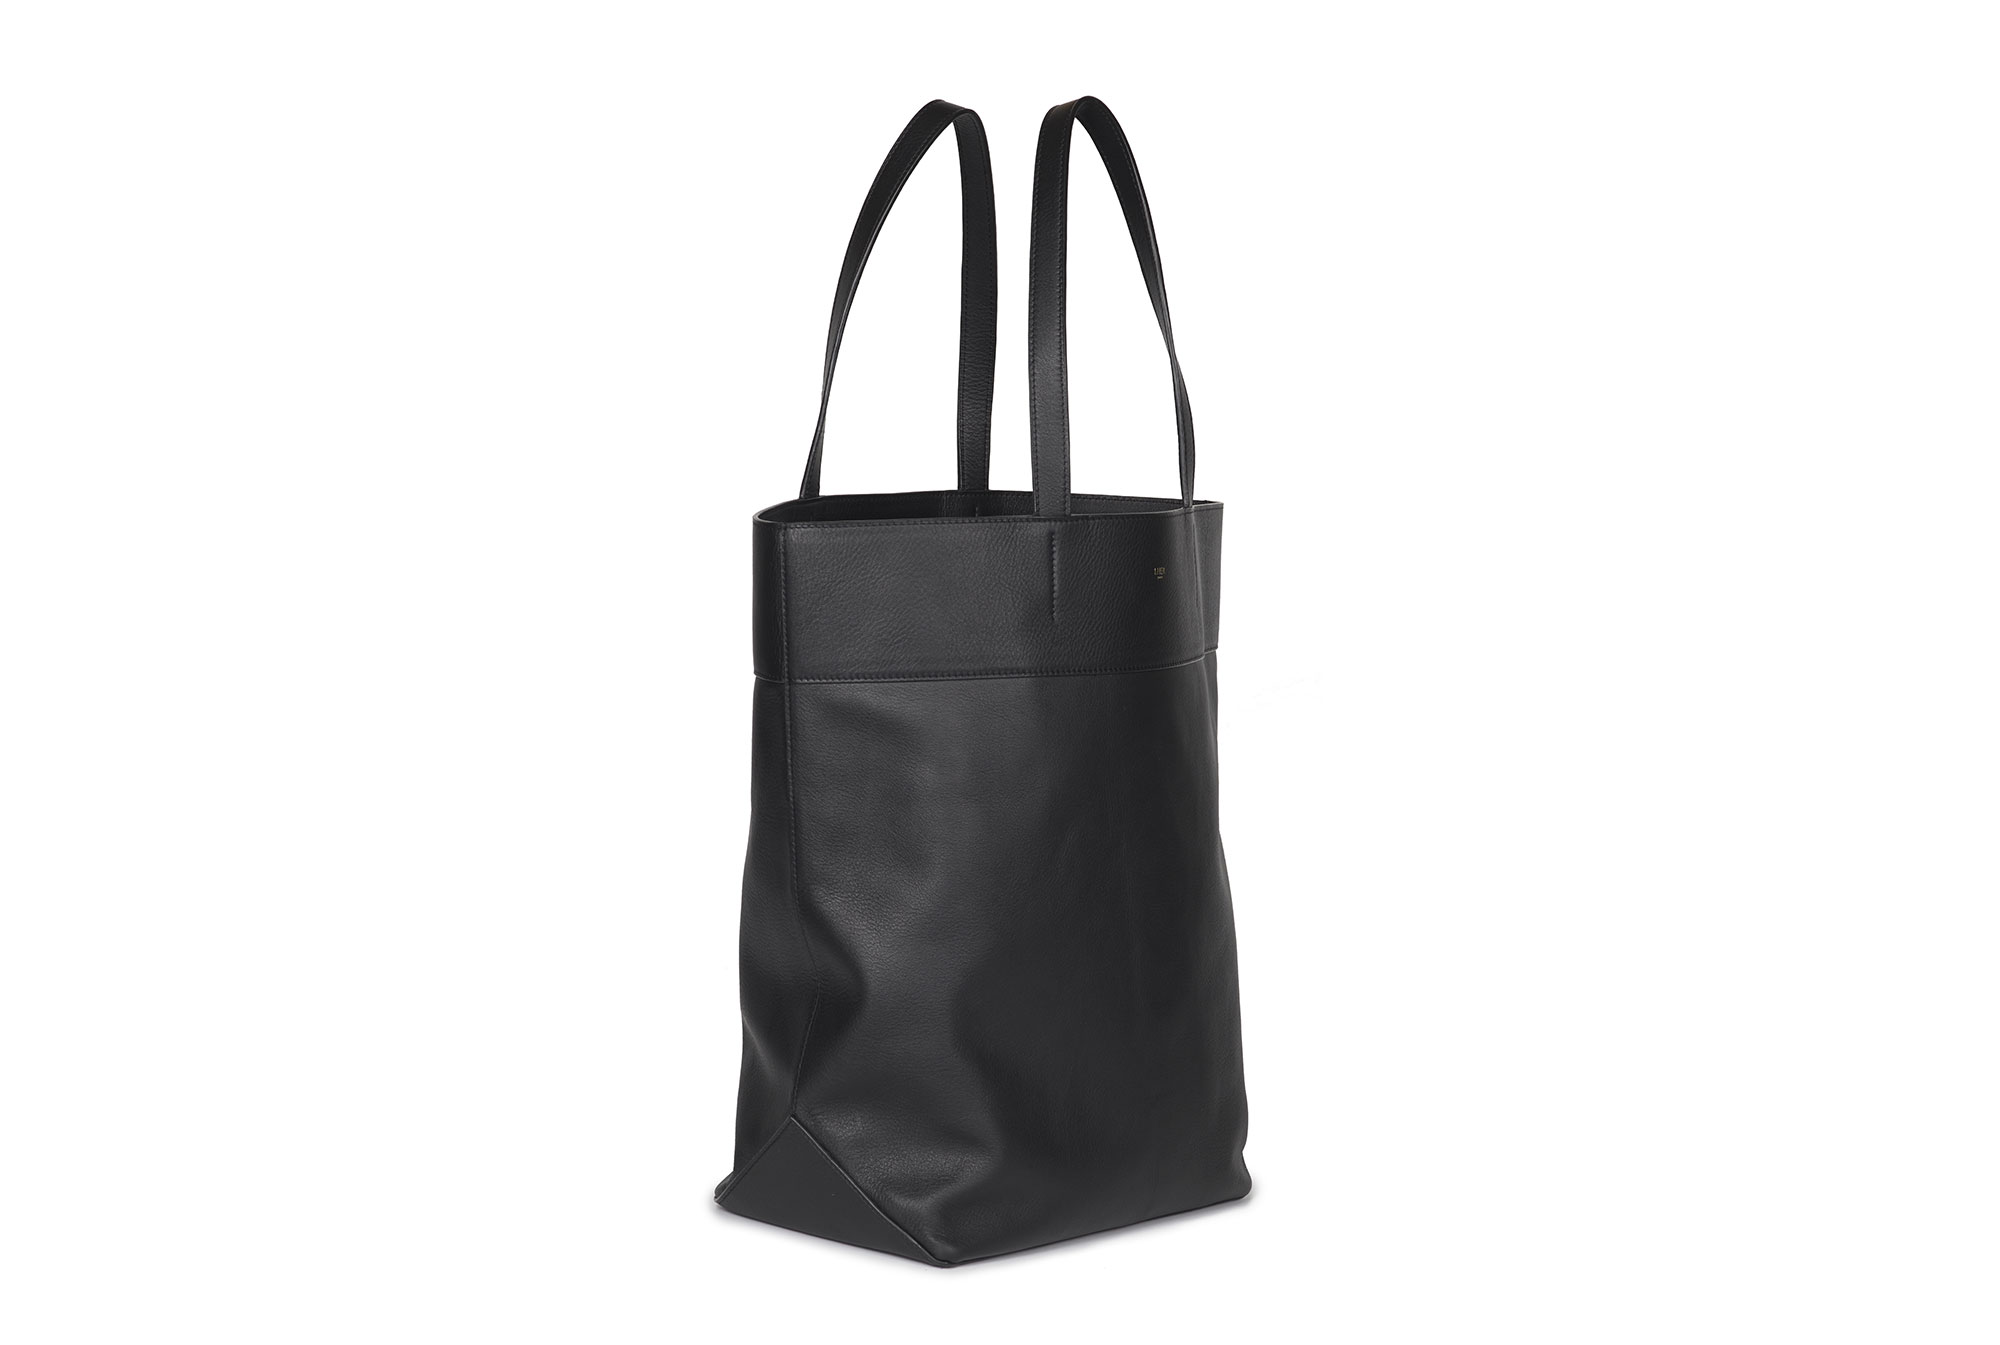 LHER Paris Fressanges Tote – Black